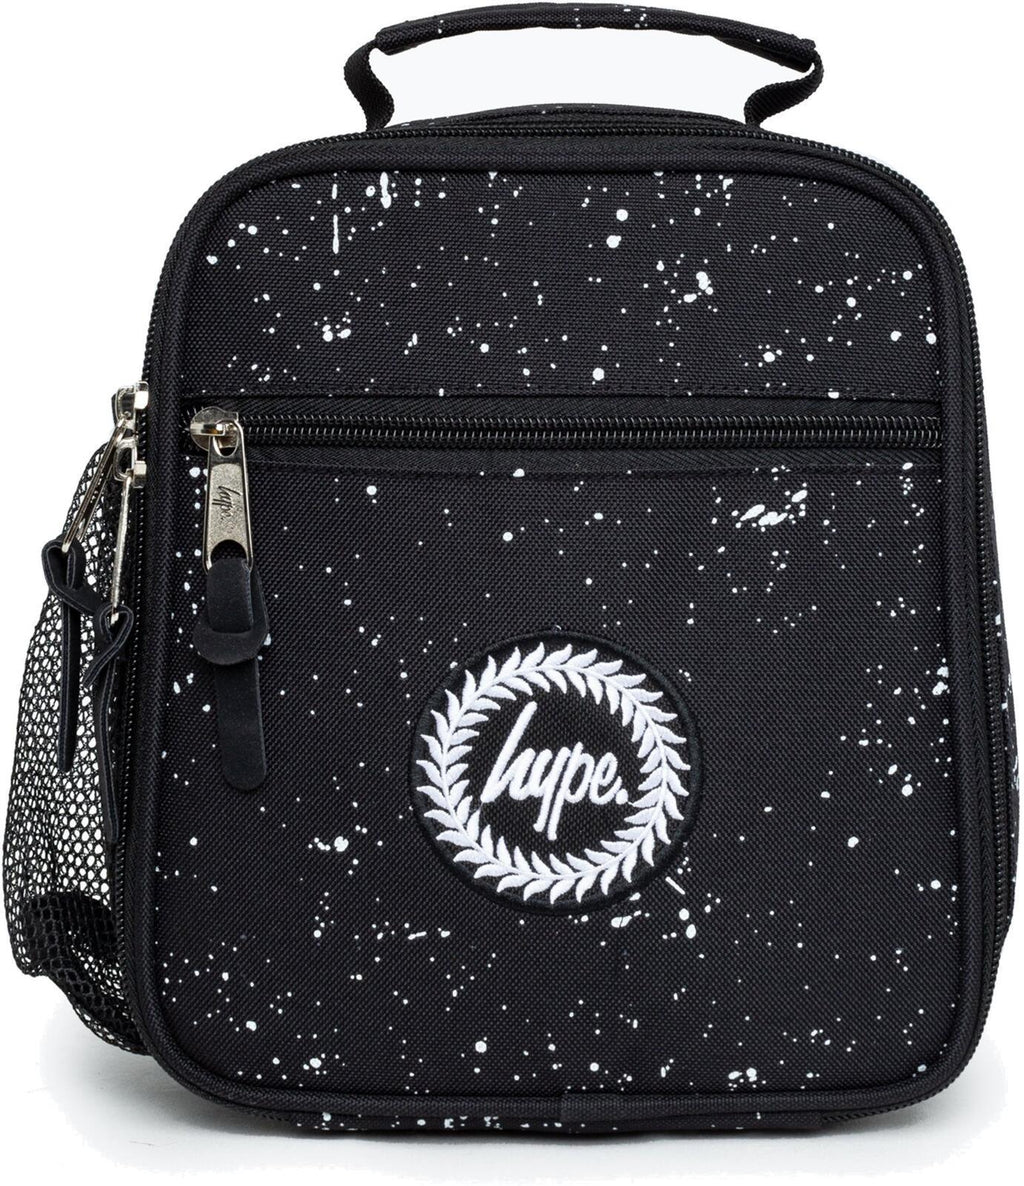 Hype Speckle Lunch Box Bag Black